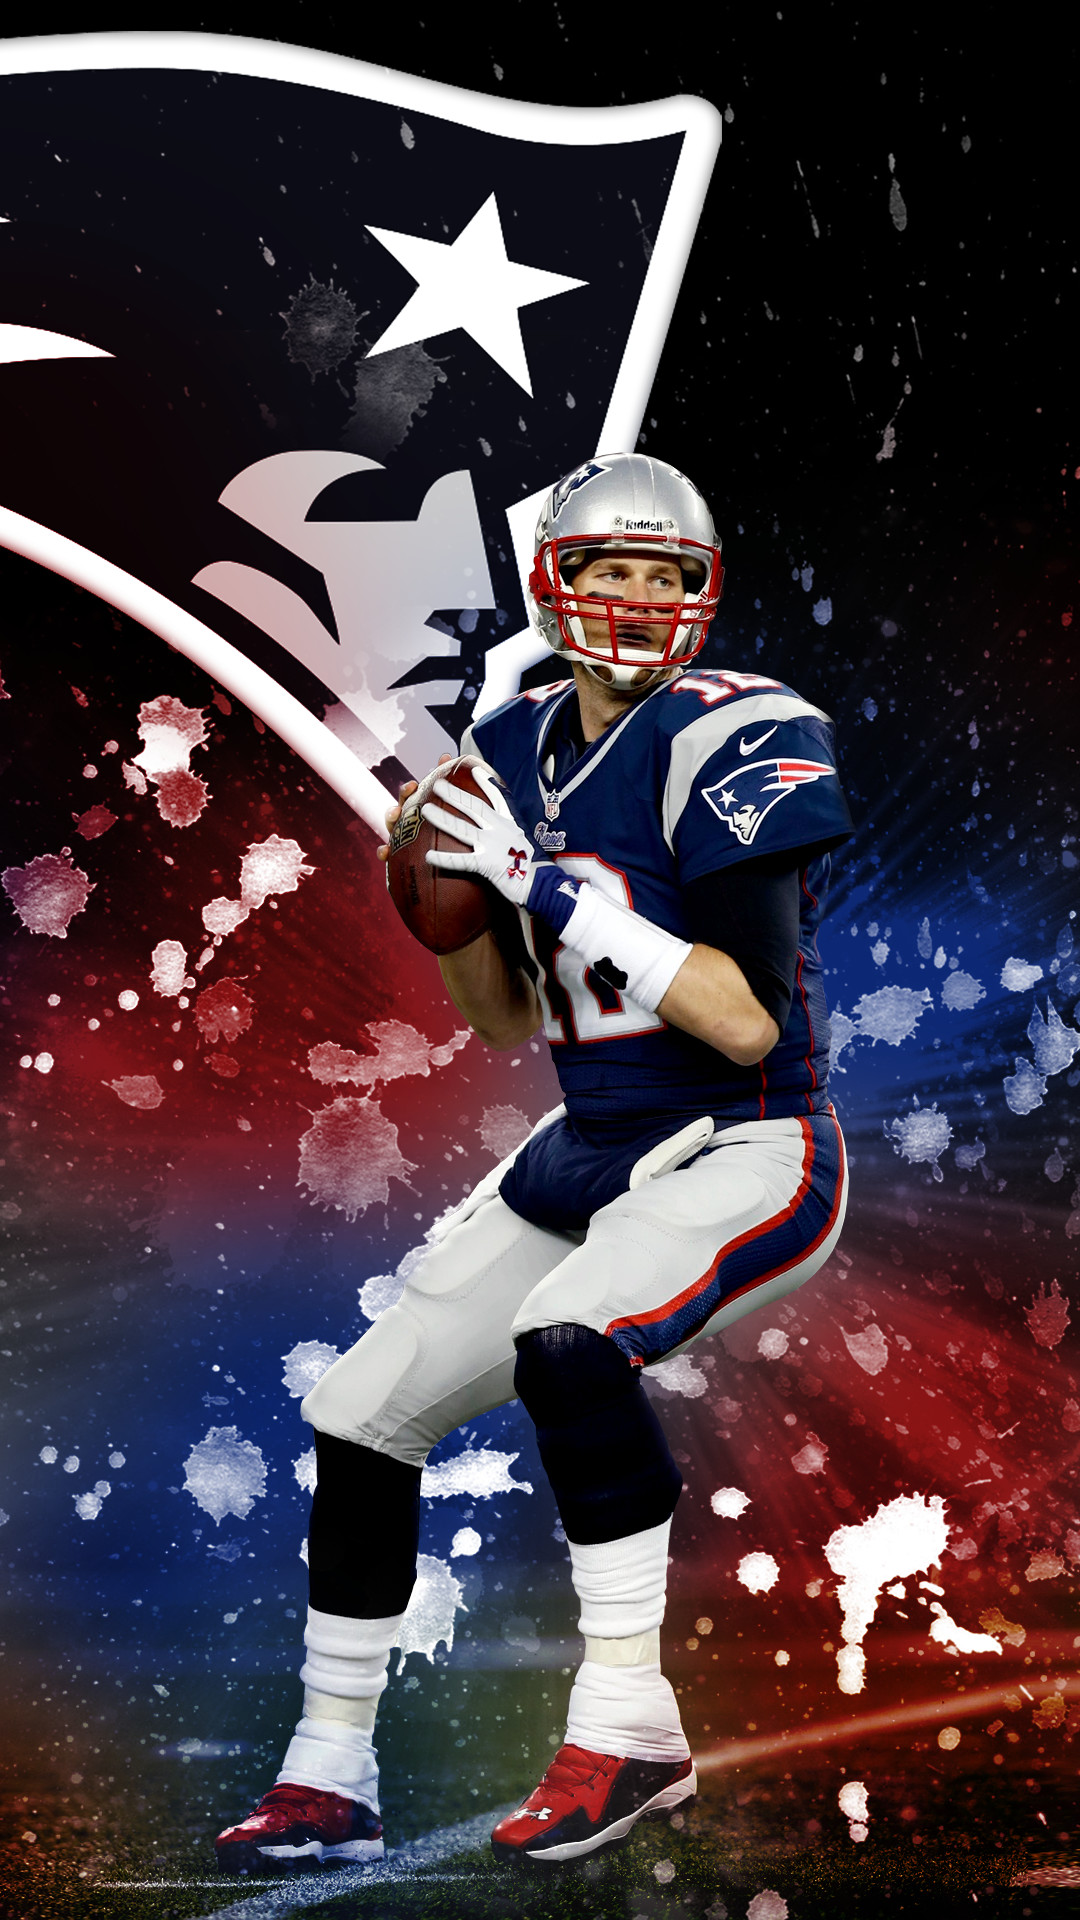 Patriots Super Bowl Champions High Quality Wallpapers Gallery, AD.5929455